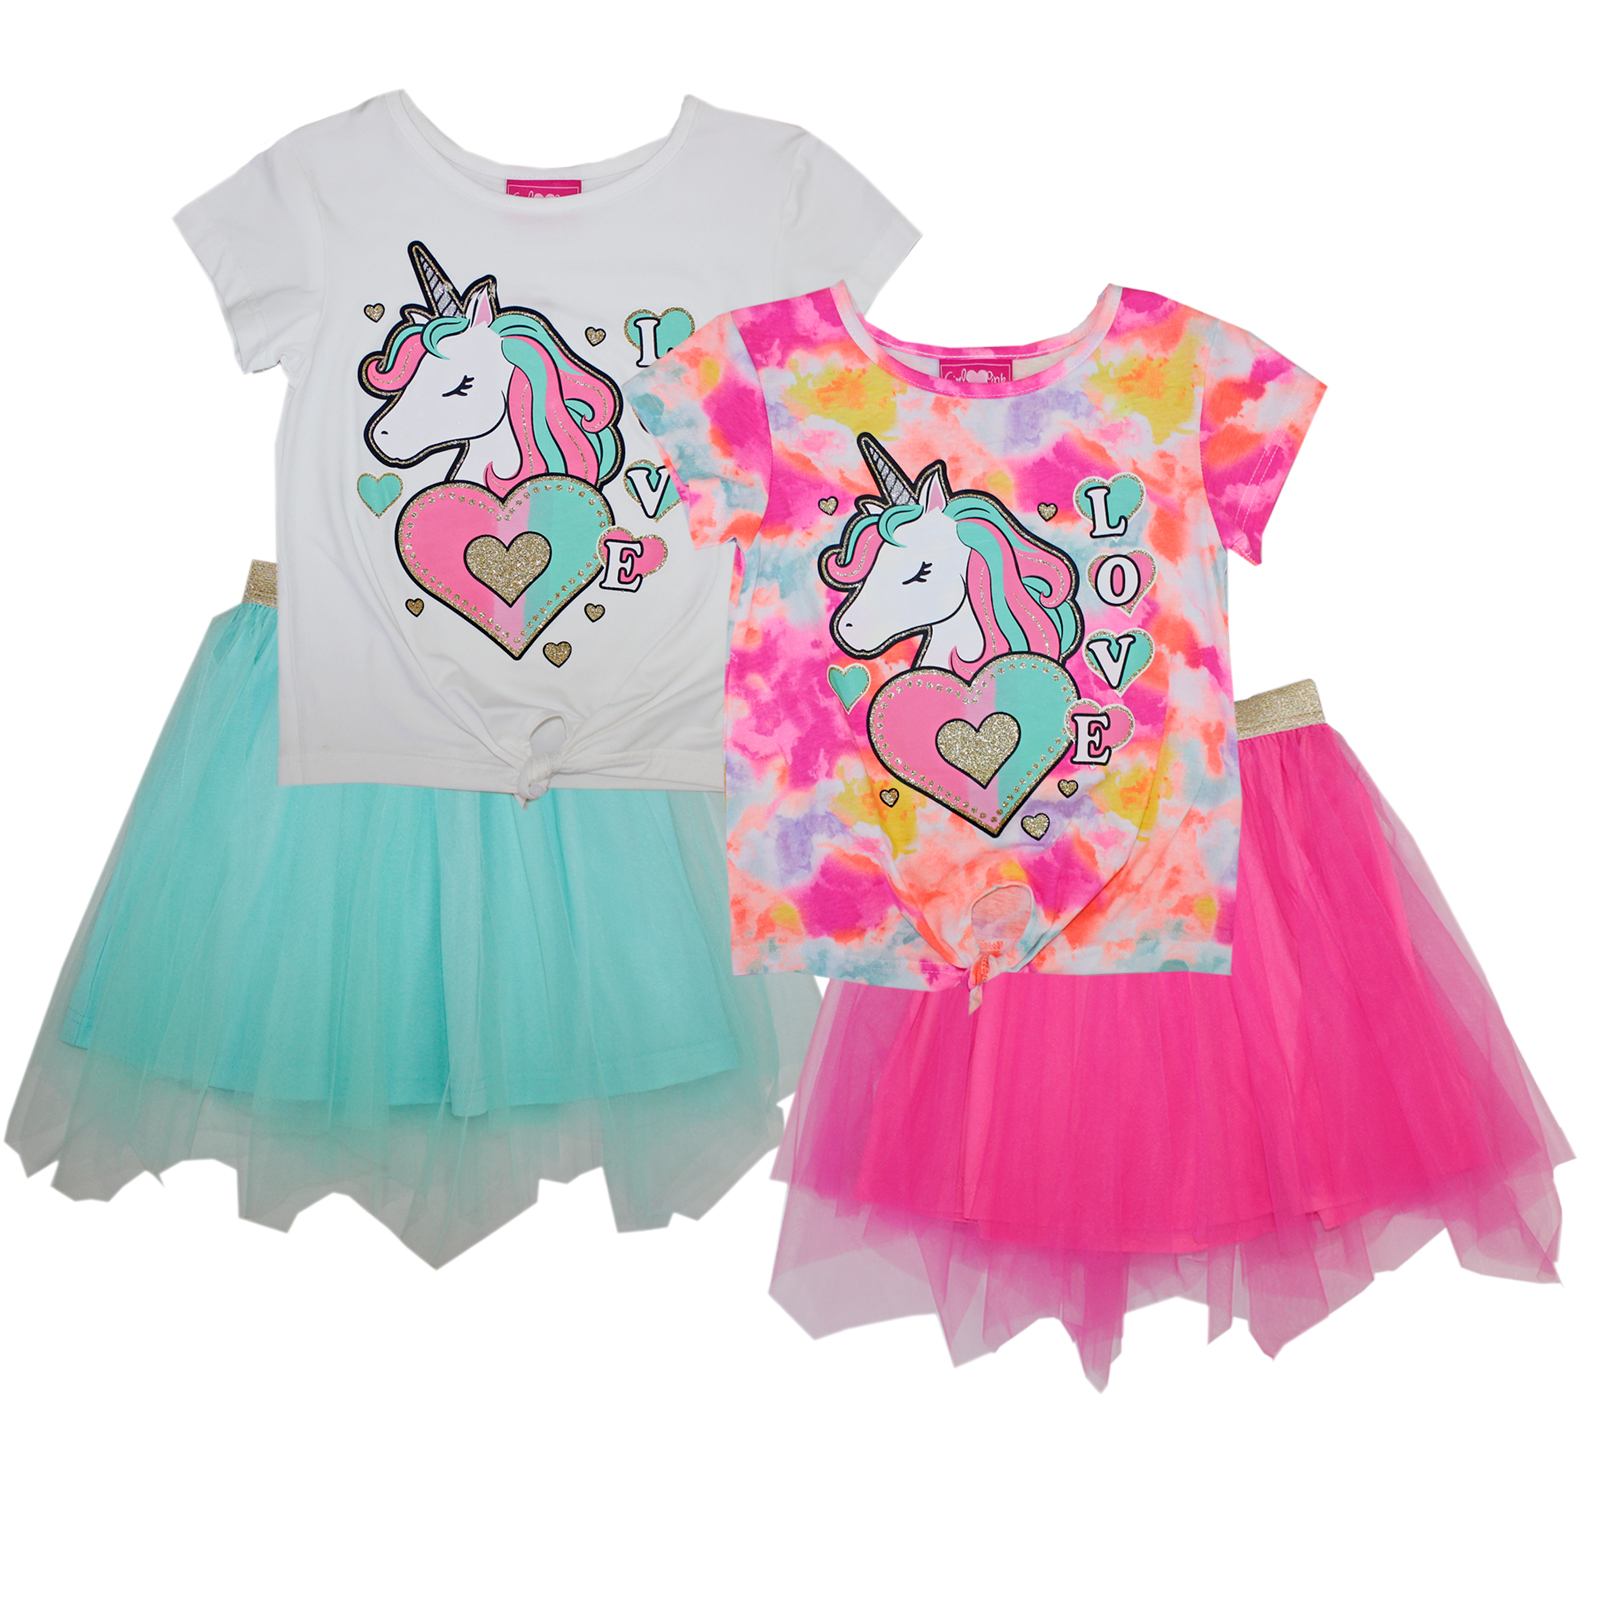 GIRLS PINK 4-6X Unicorn Love Knit Top W Tulle Skirt